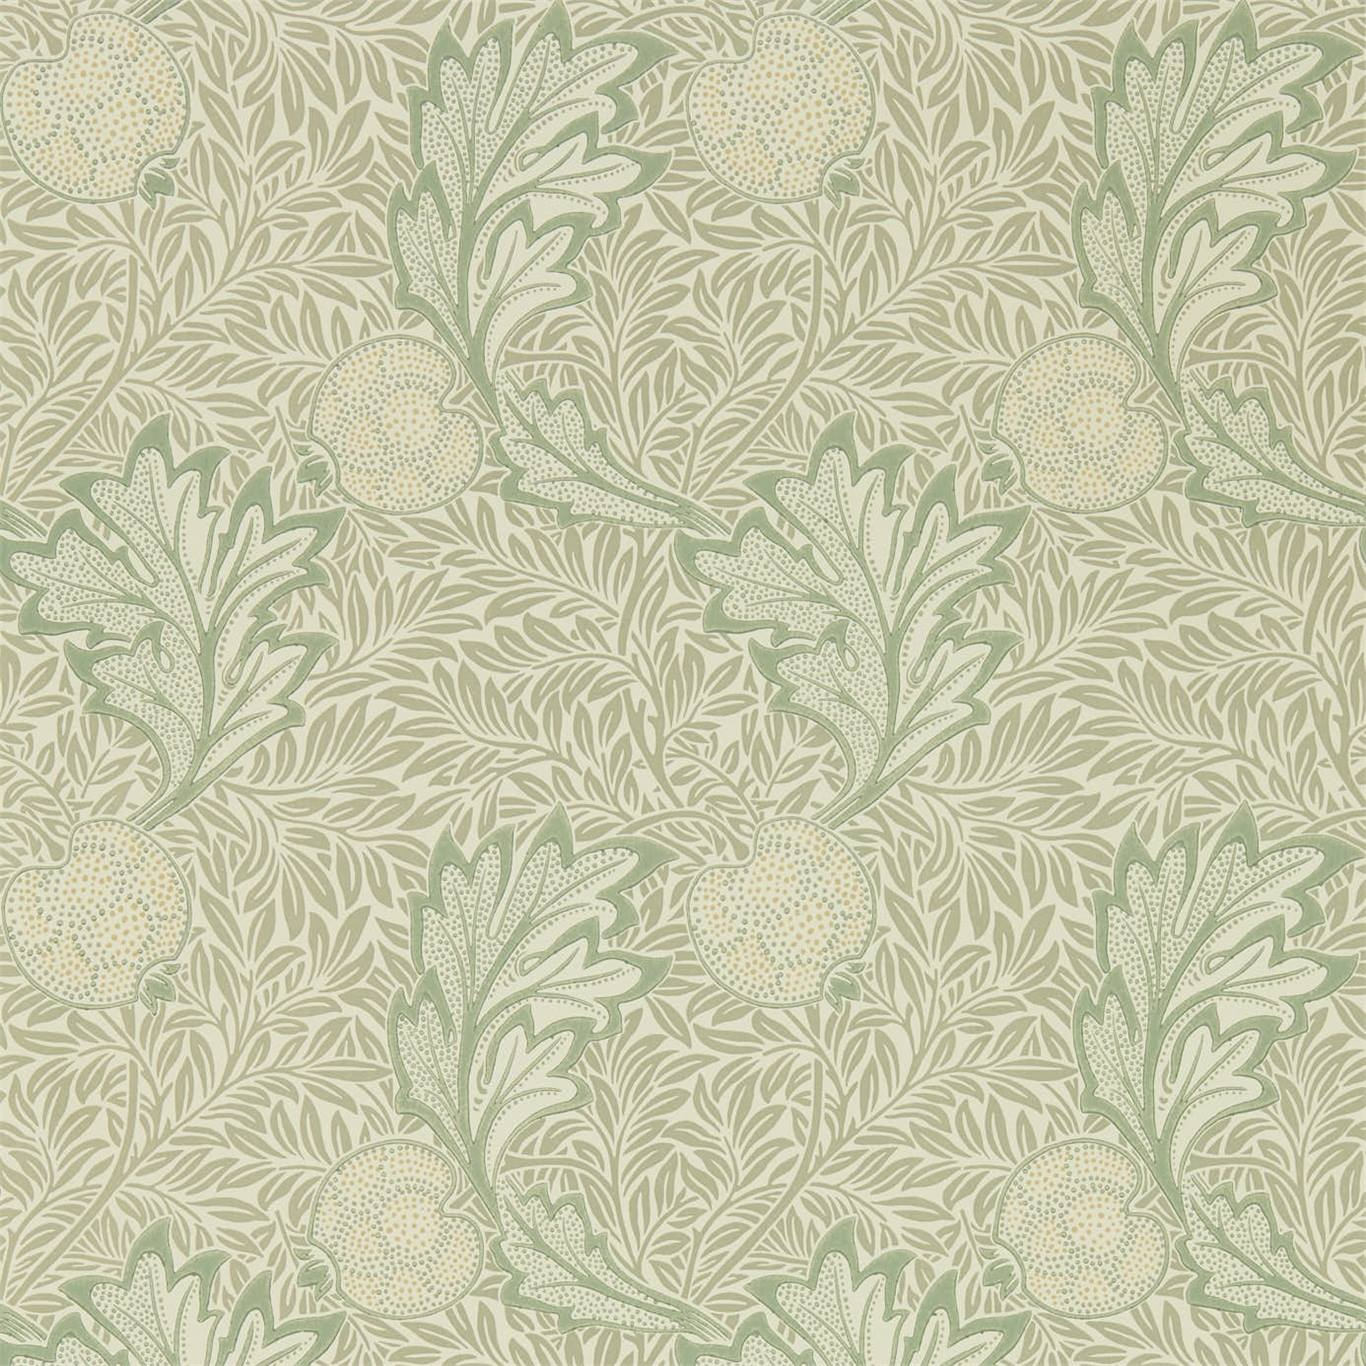 Image of Morris & Co Apple Bay Leaf Wallpaper 216689